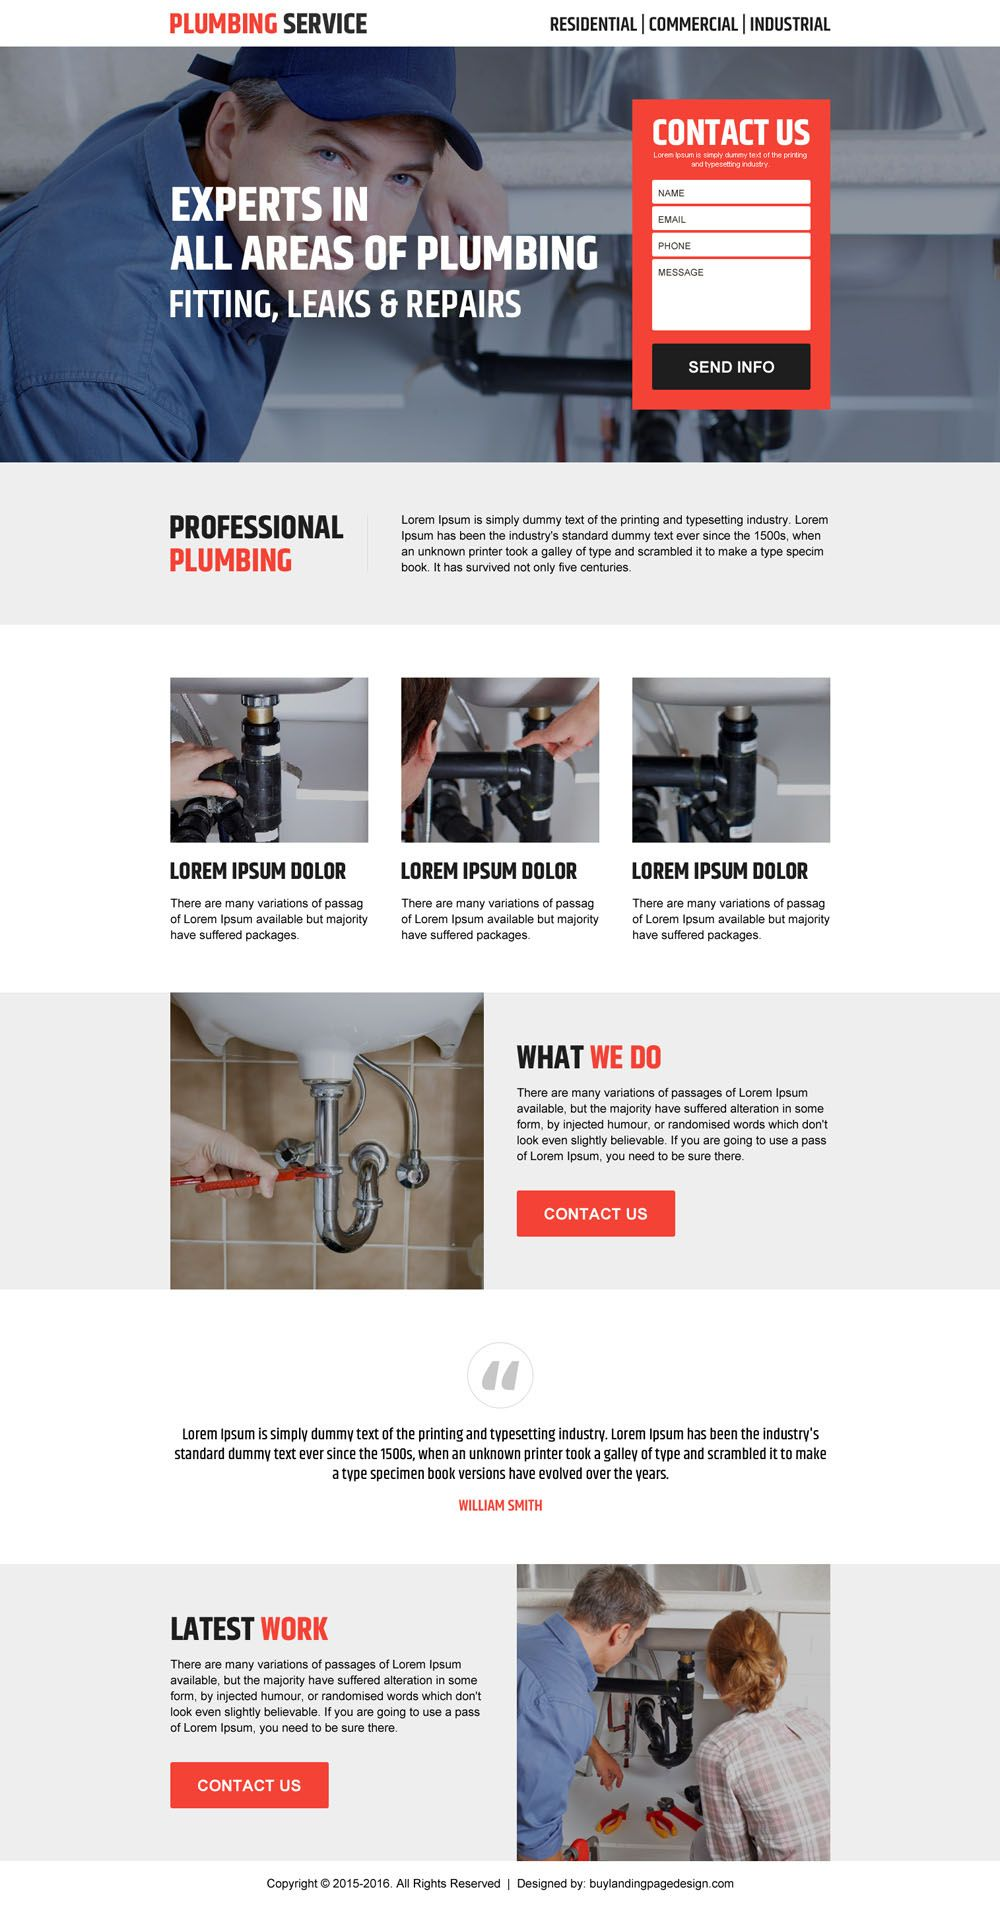 Website Templates Best Landing Pages To Promote Your Plumbing Services   Website